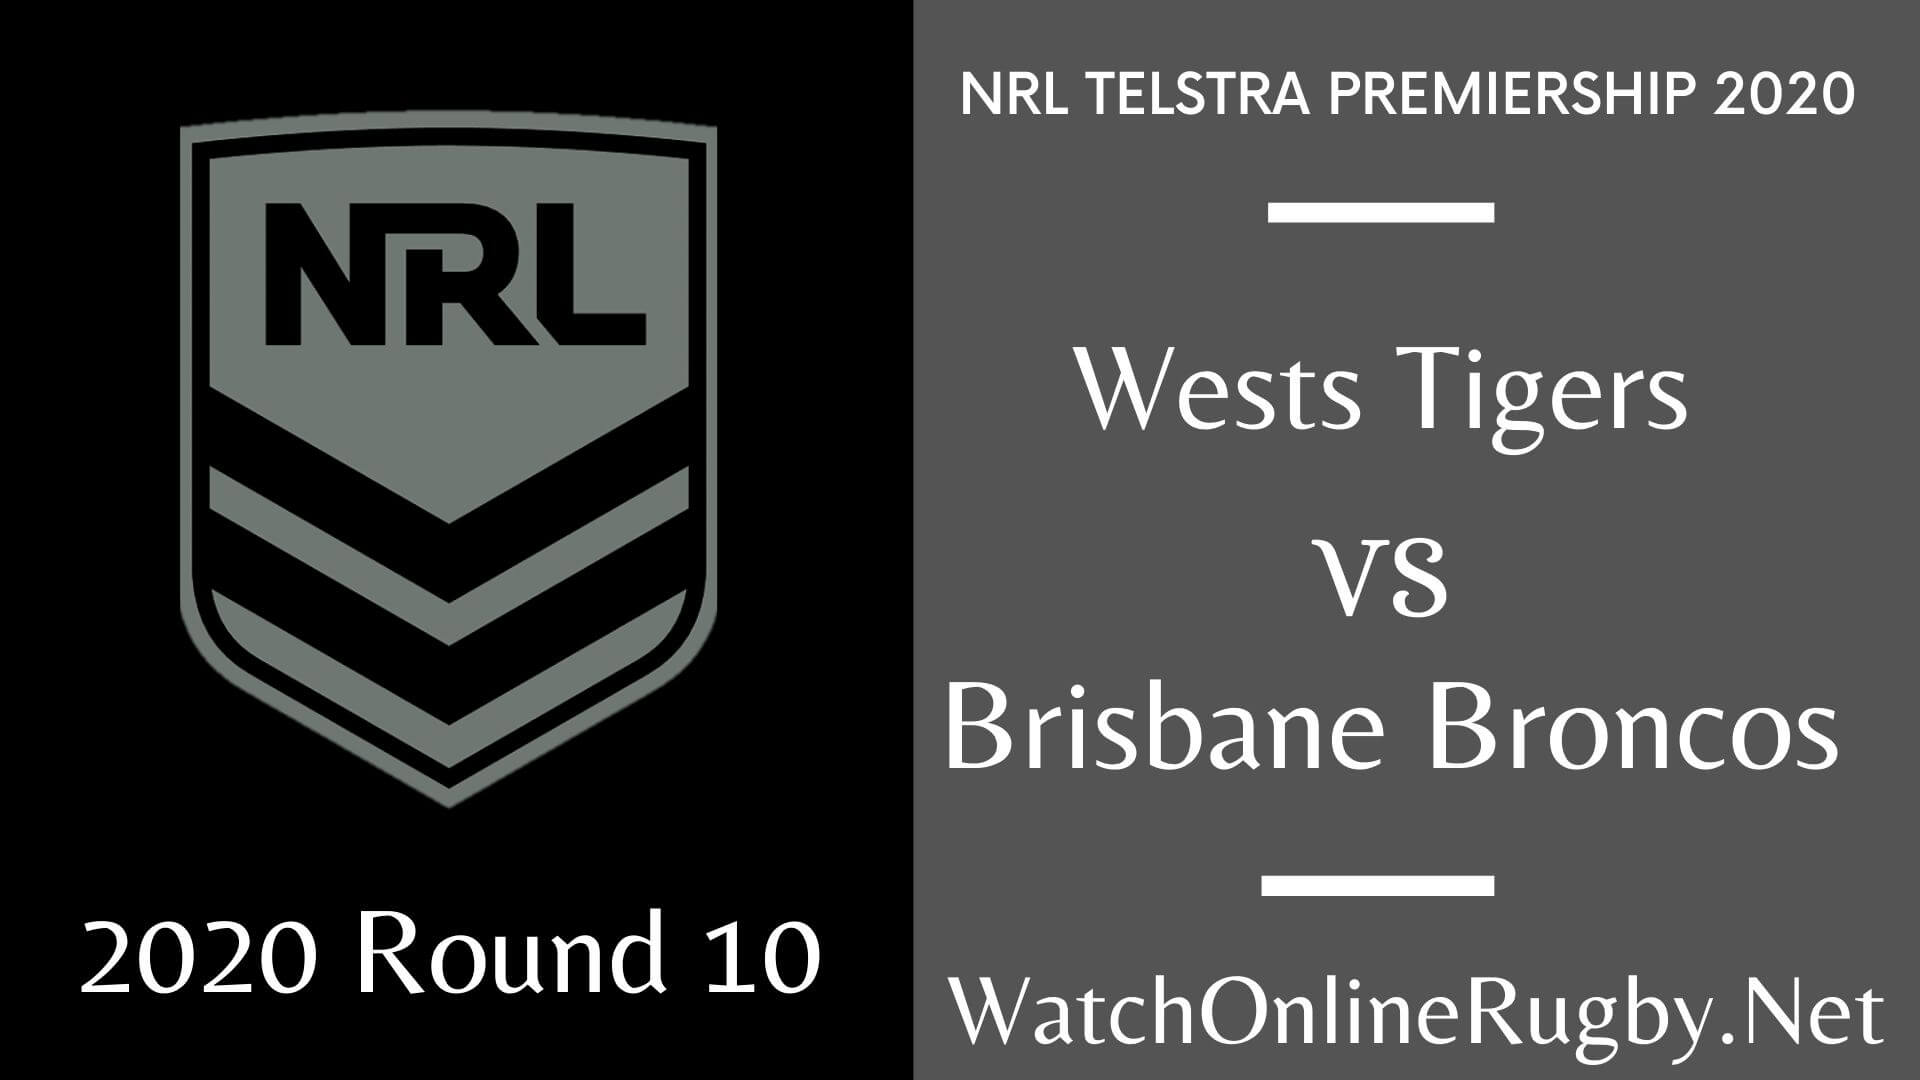 Wests Tigers Vs Broncos Highlights 2020 Round 10 Nrl Rugby